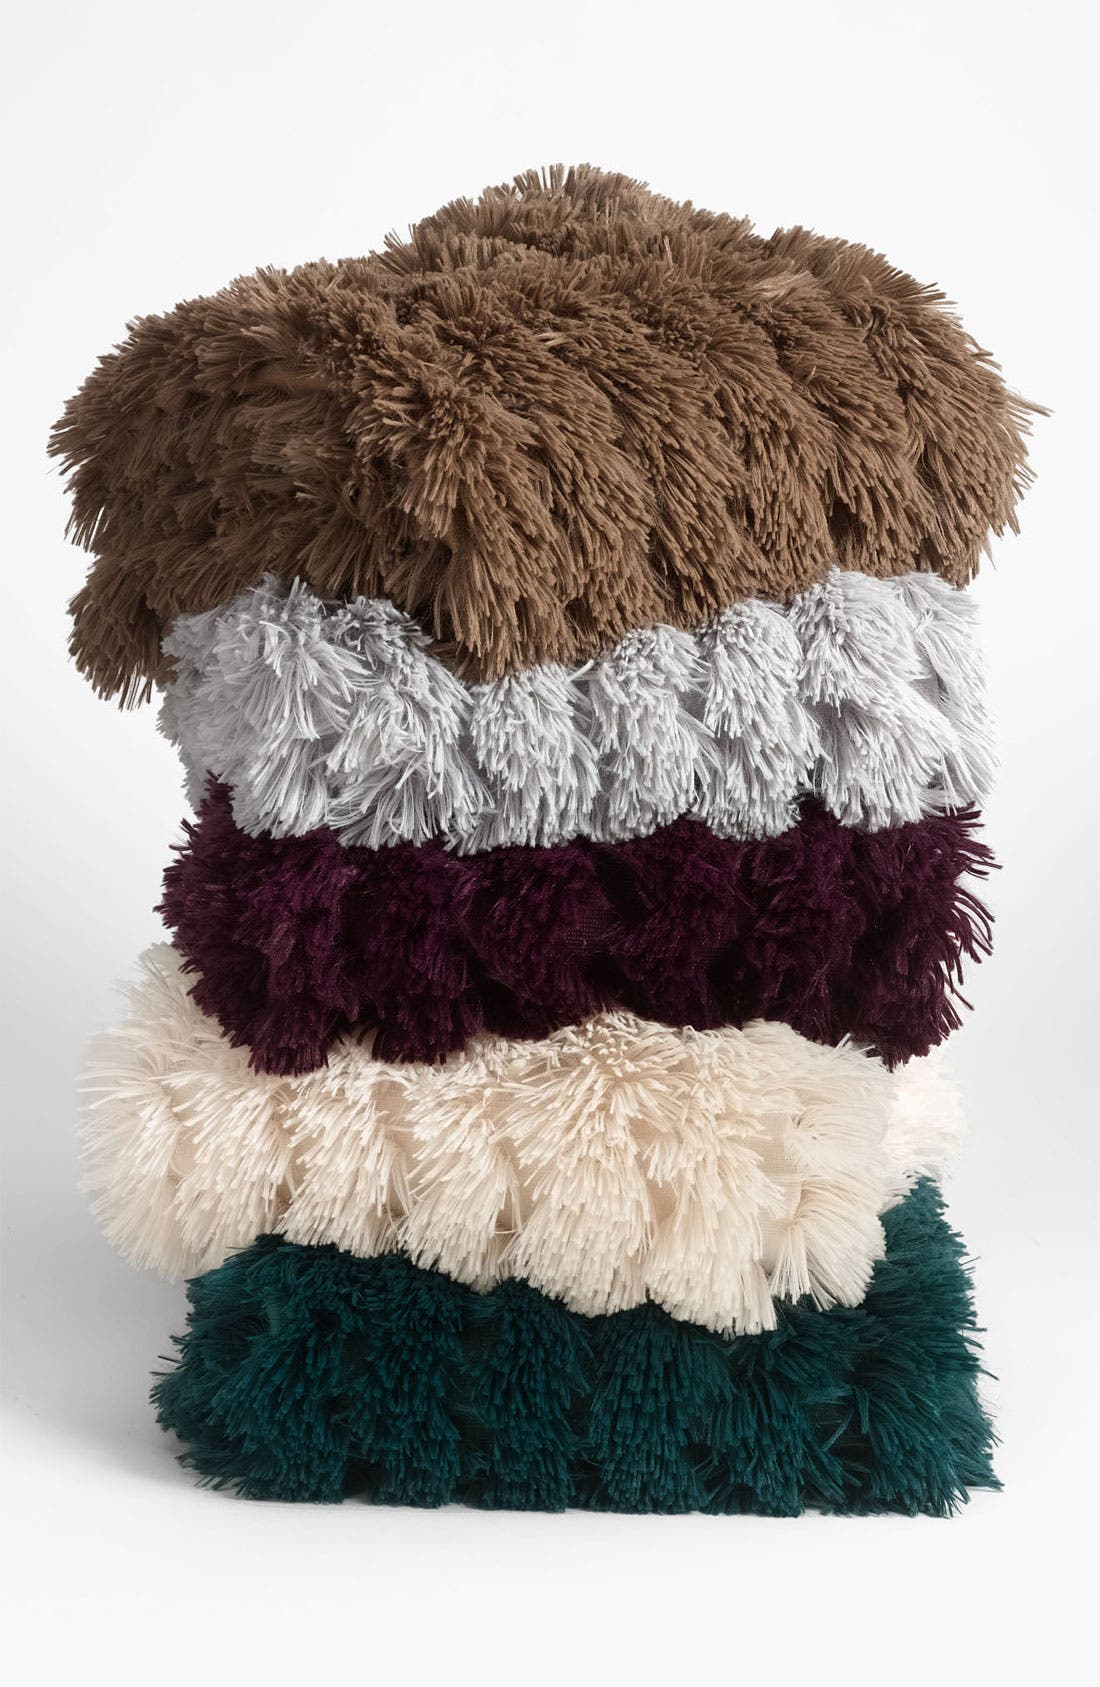 Alternate Image 1 Selected - Spencer N. Home 'Pompom' Throw